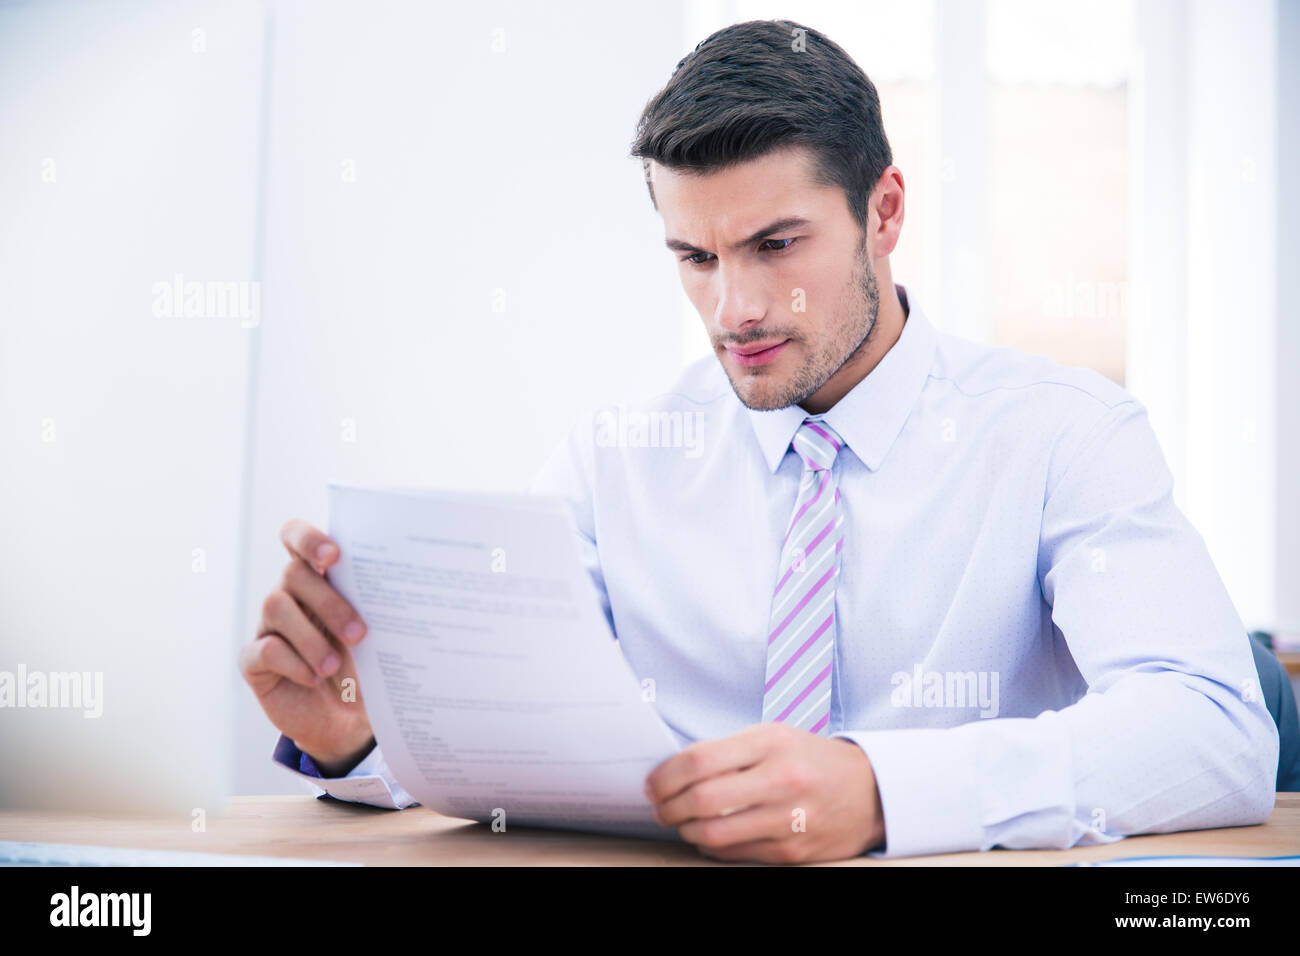 Handsome businessman sitting at the table reading document in office - Stock Image